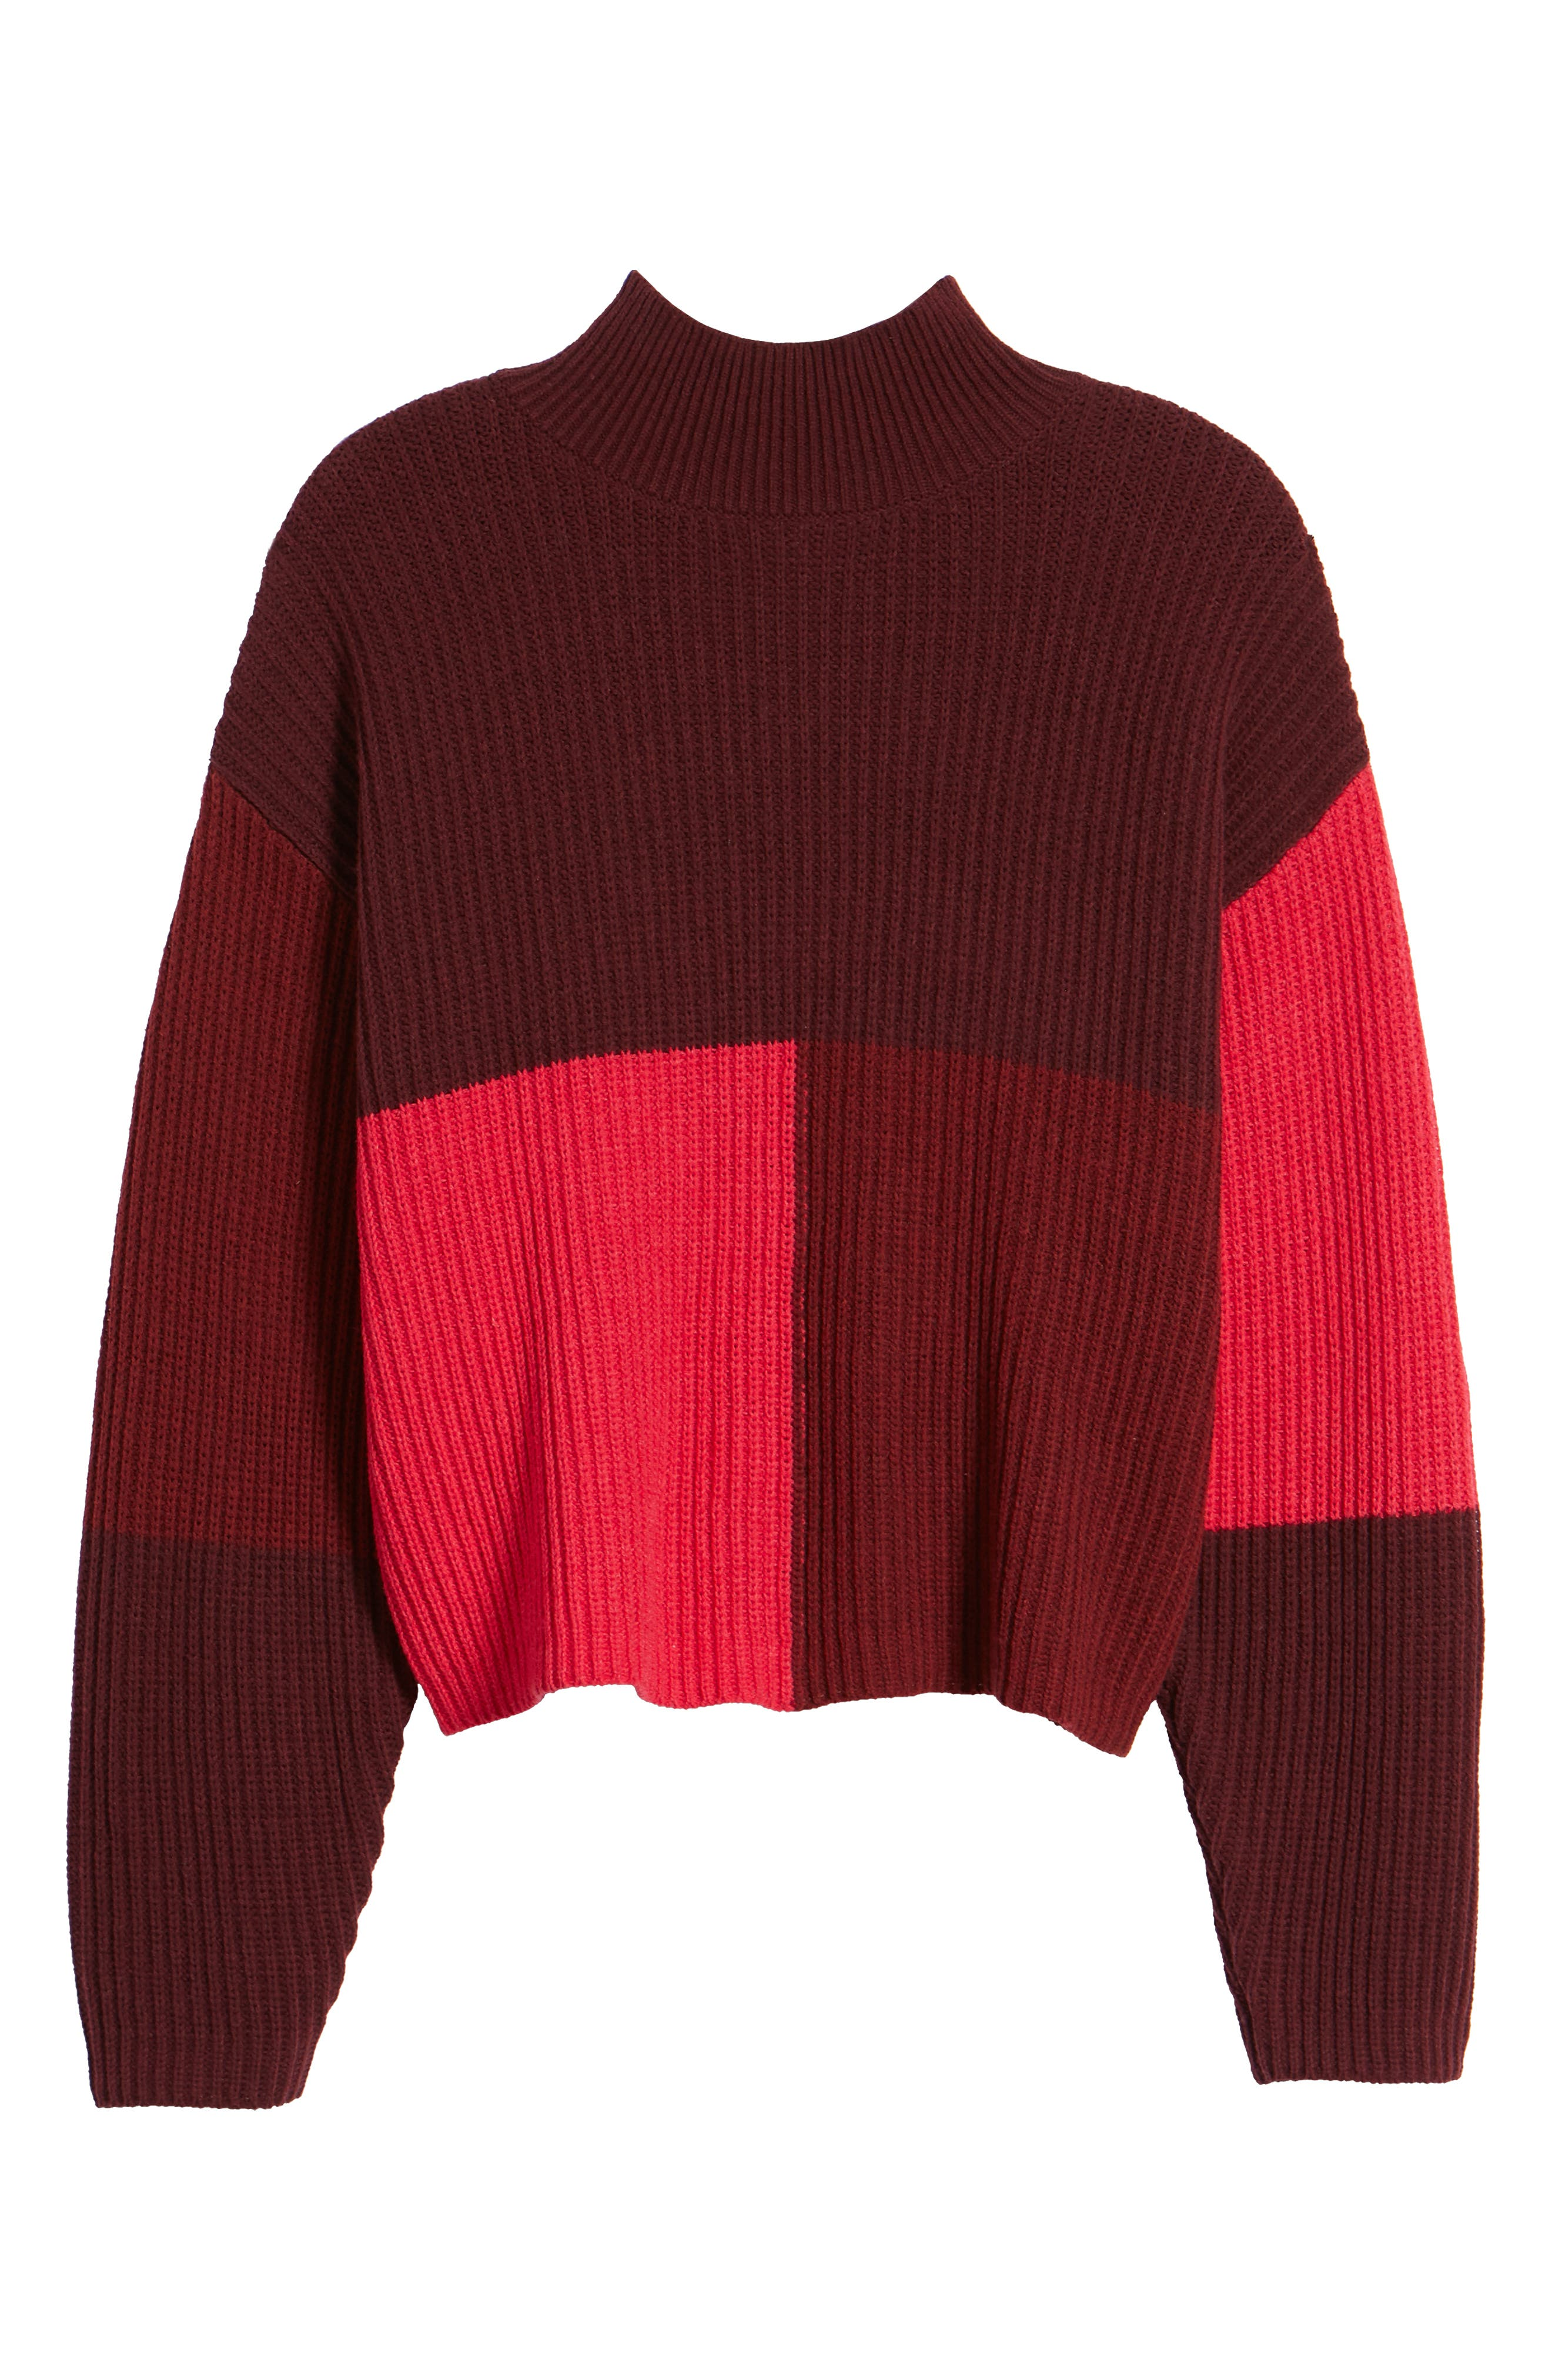 Mock Neck Colorblock Sweater,                             Alternate thumbnail 6, color,                             RED RUMBA COLORBLOCK